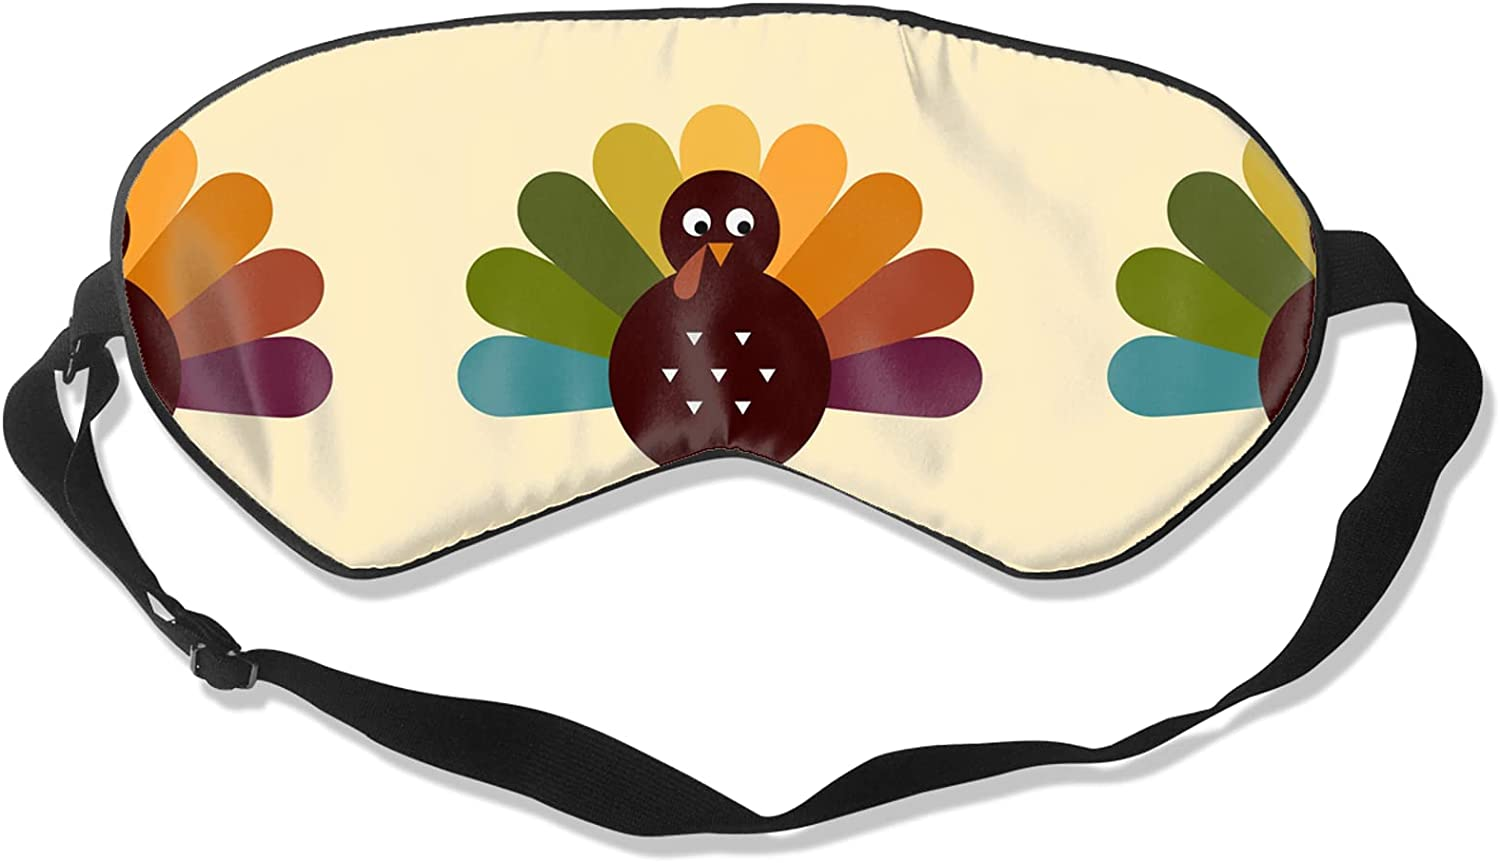 Cute Retro Thanksgiving Turkey Sleep Animer and price revision Breathable Eye Max 66% OFF So Blindfold